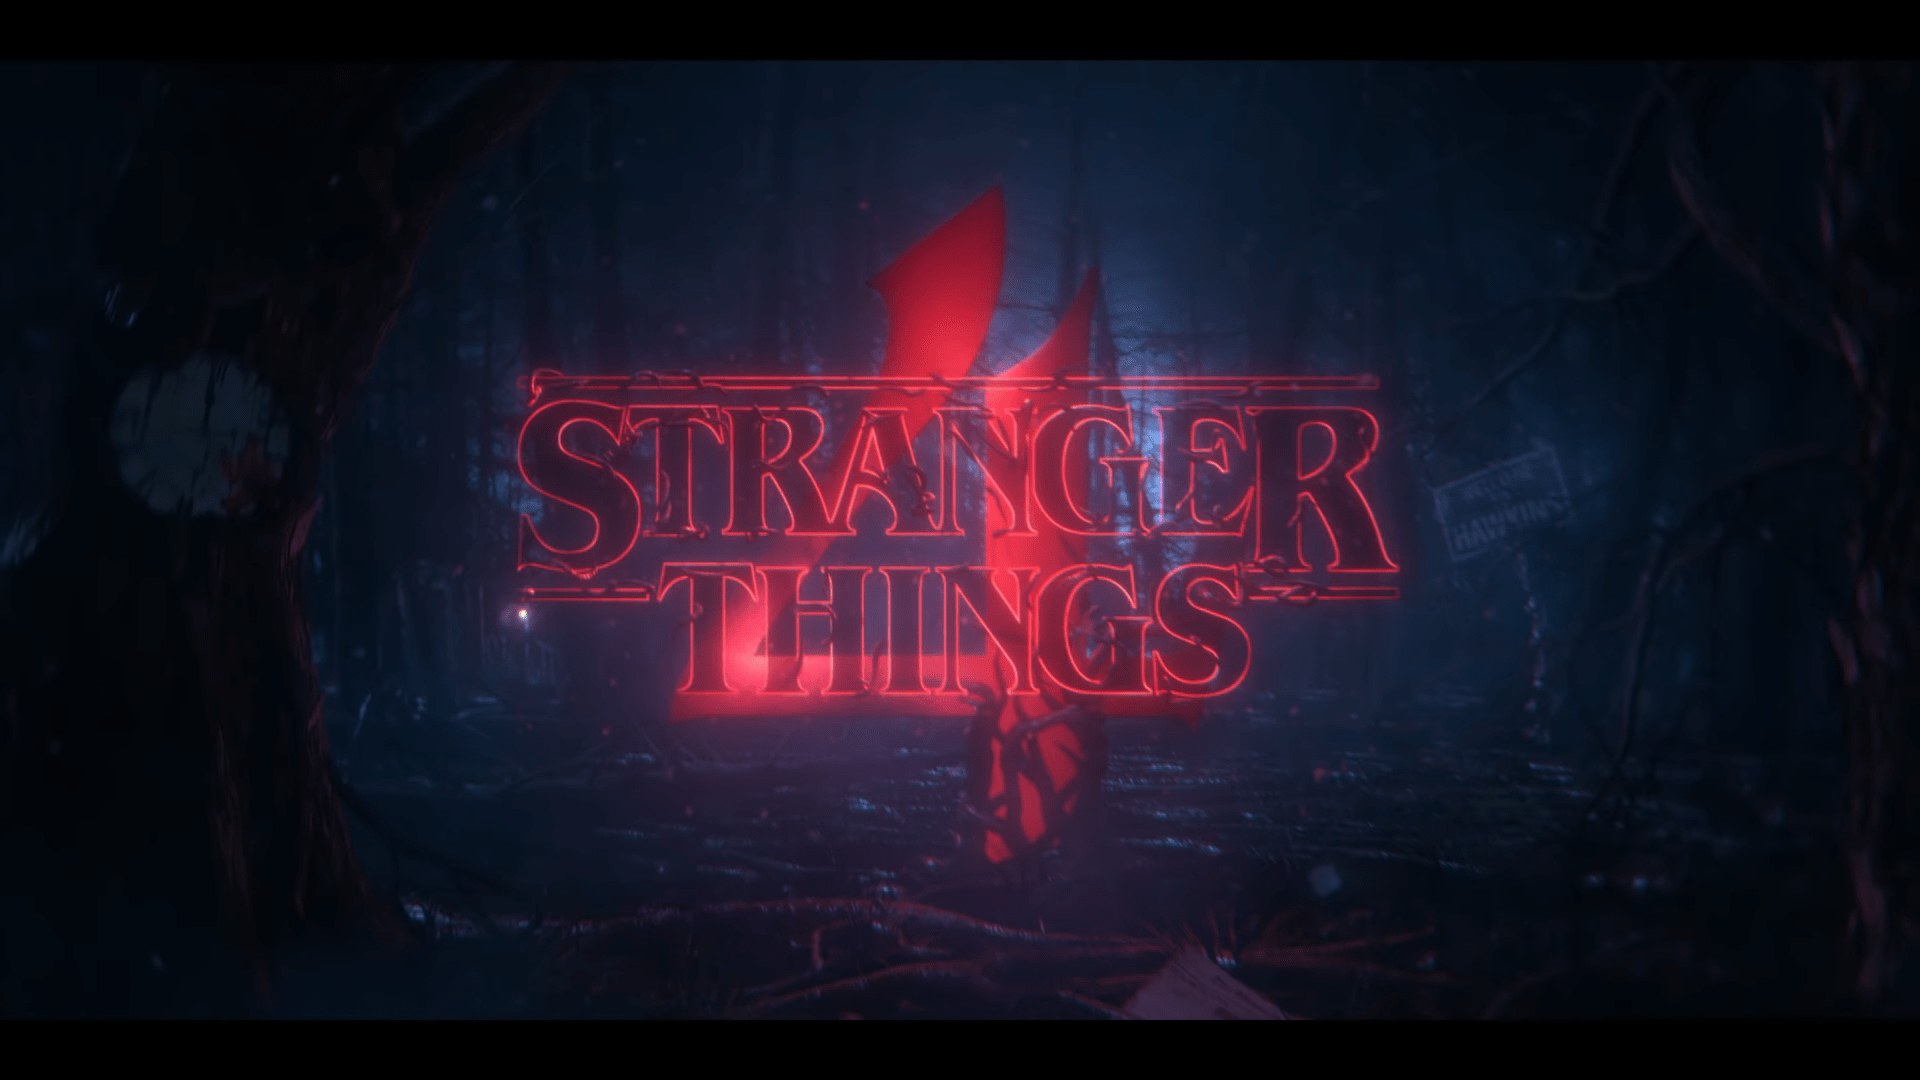 Stranger Things Season 4, Stranger Things Season 4 Trailer, Everything you need to know